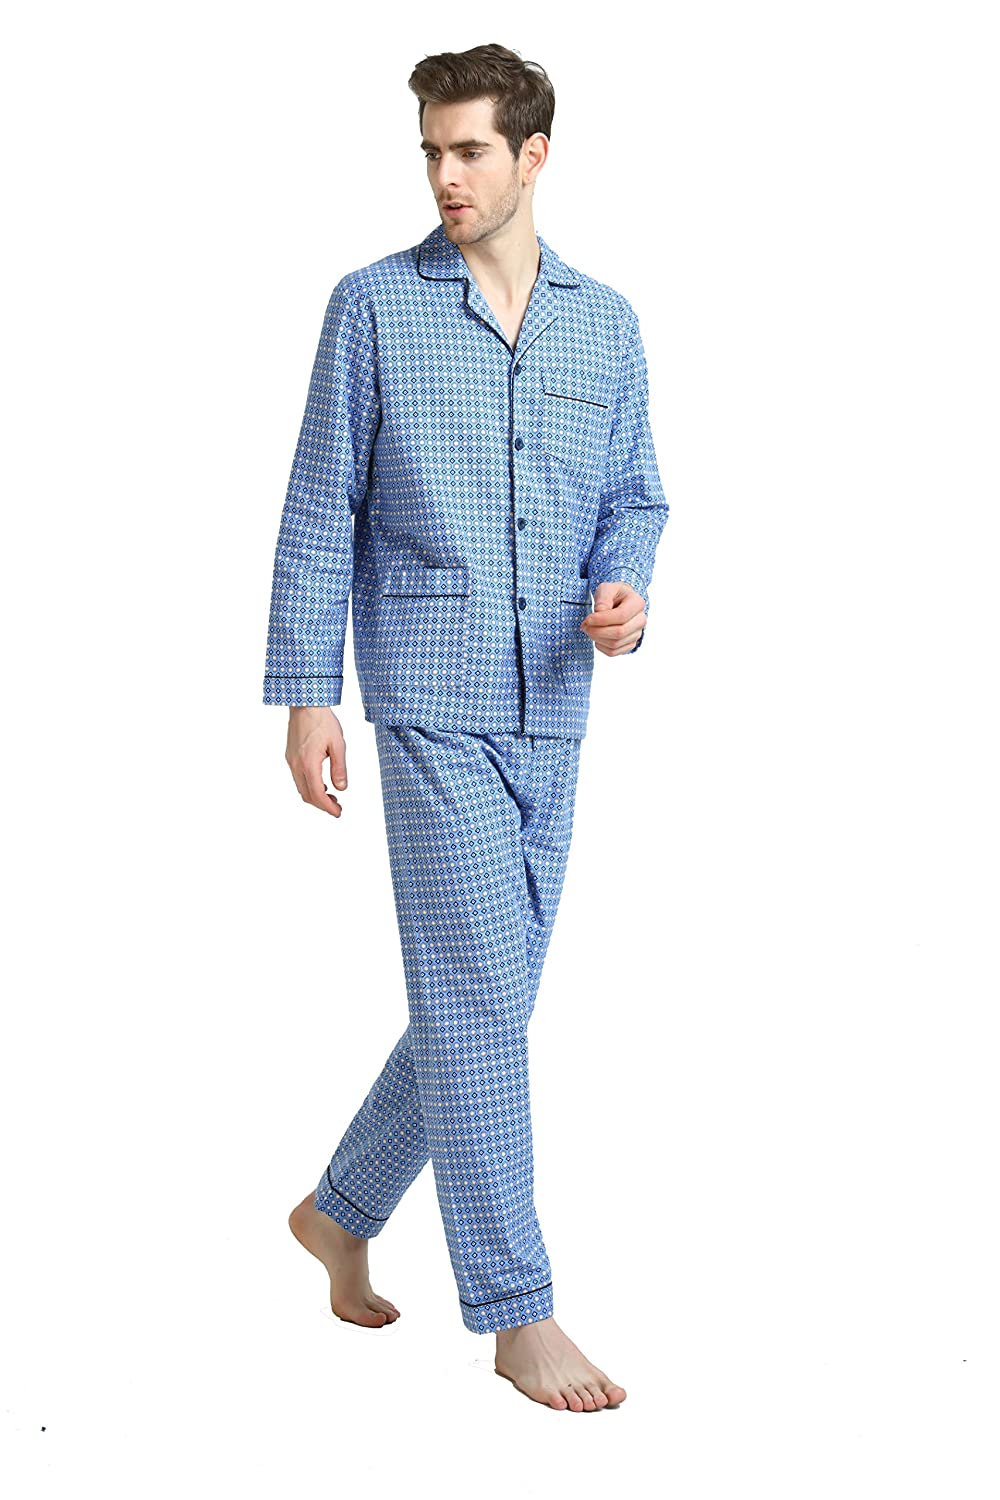 3228352cb2 Global Men's Pyjamas 100% Cotton Comfortable Flannel Sleepwear Long-Sleeve  top and Bottom Flannel